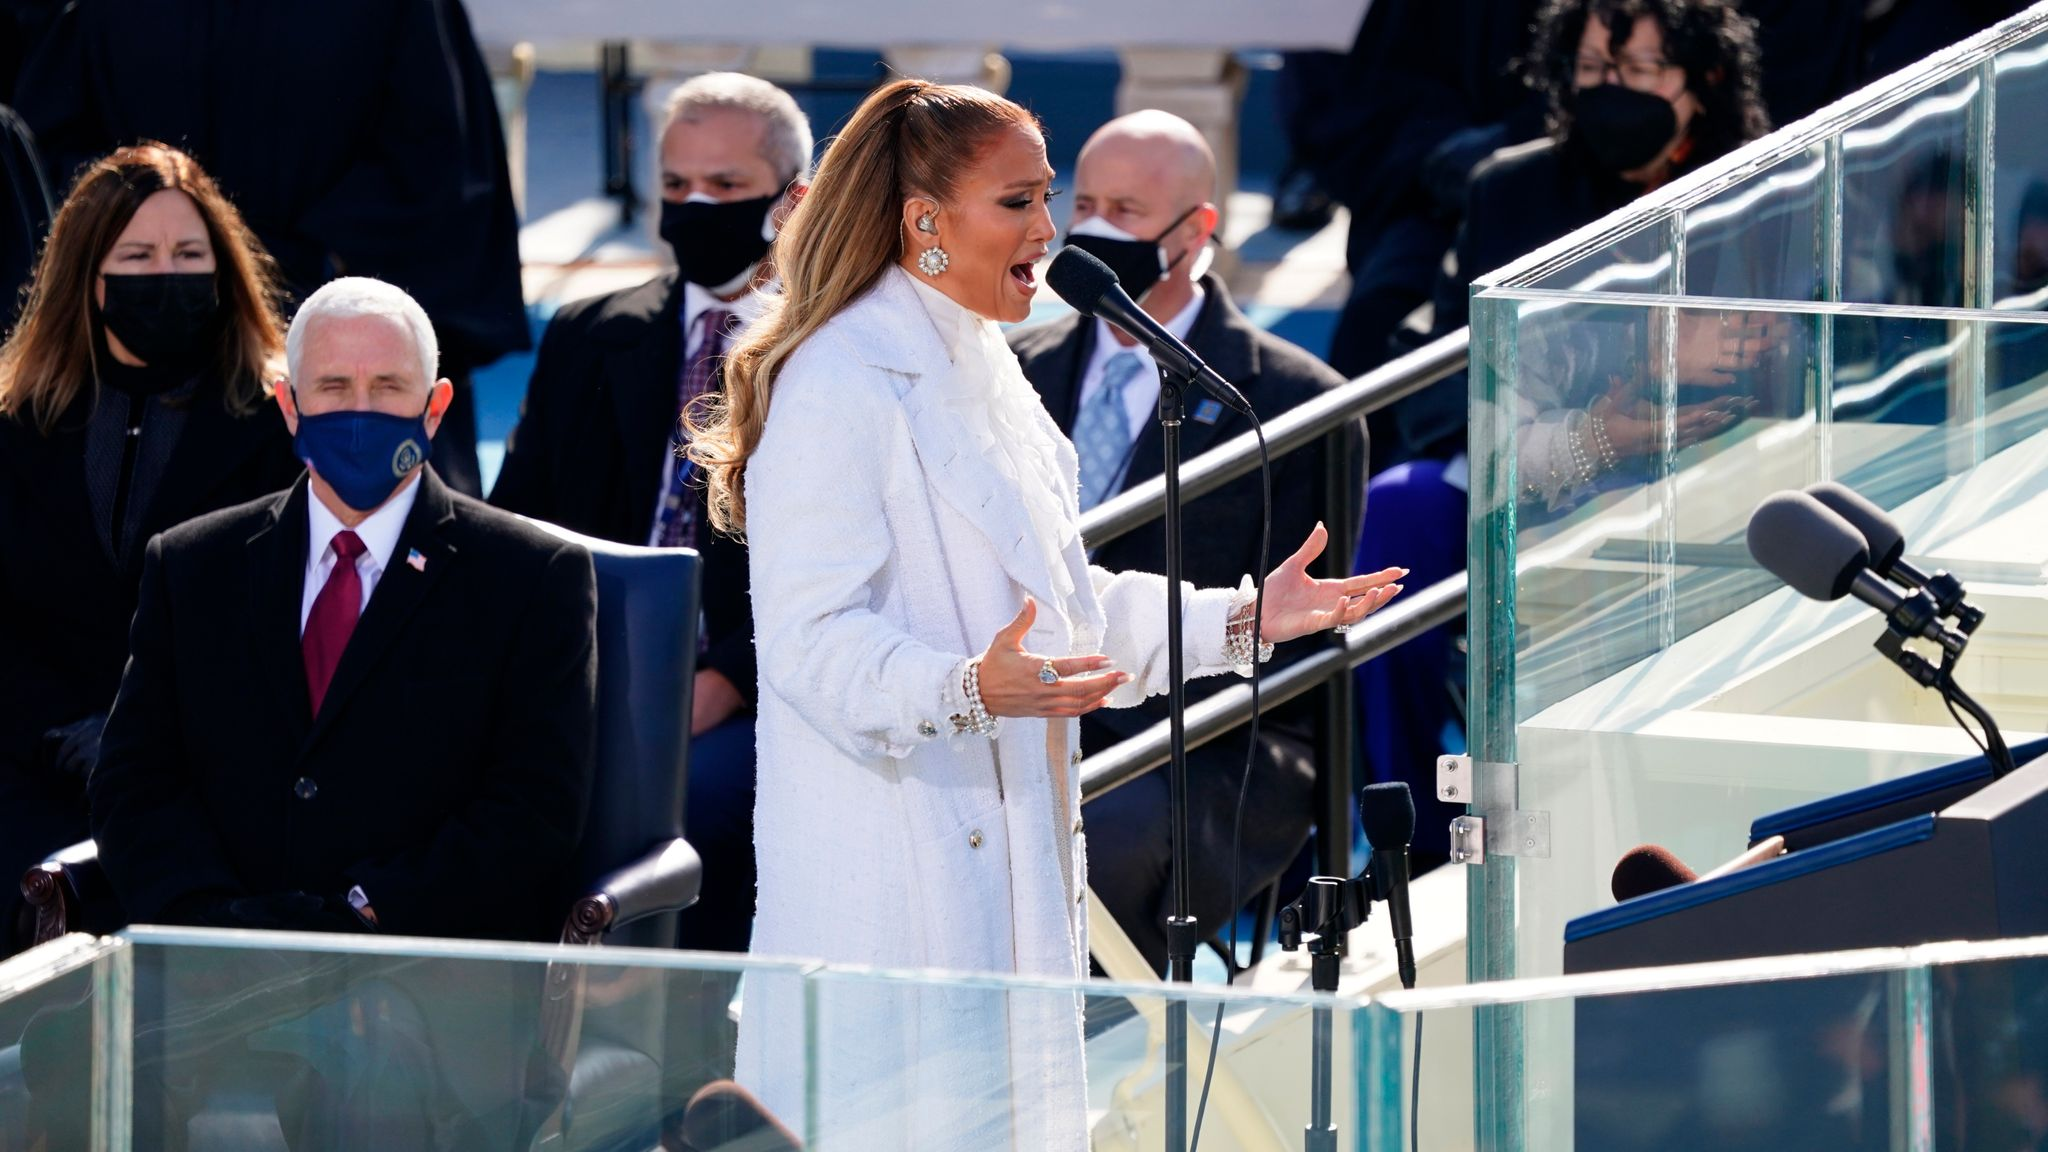 Jennifer Lopez at the inauguration ceremony, as former vice president Mike Pence watches on. Pic: AP